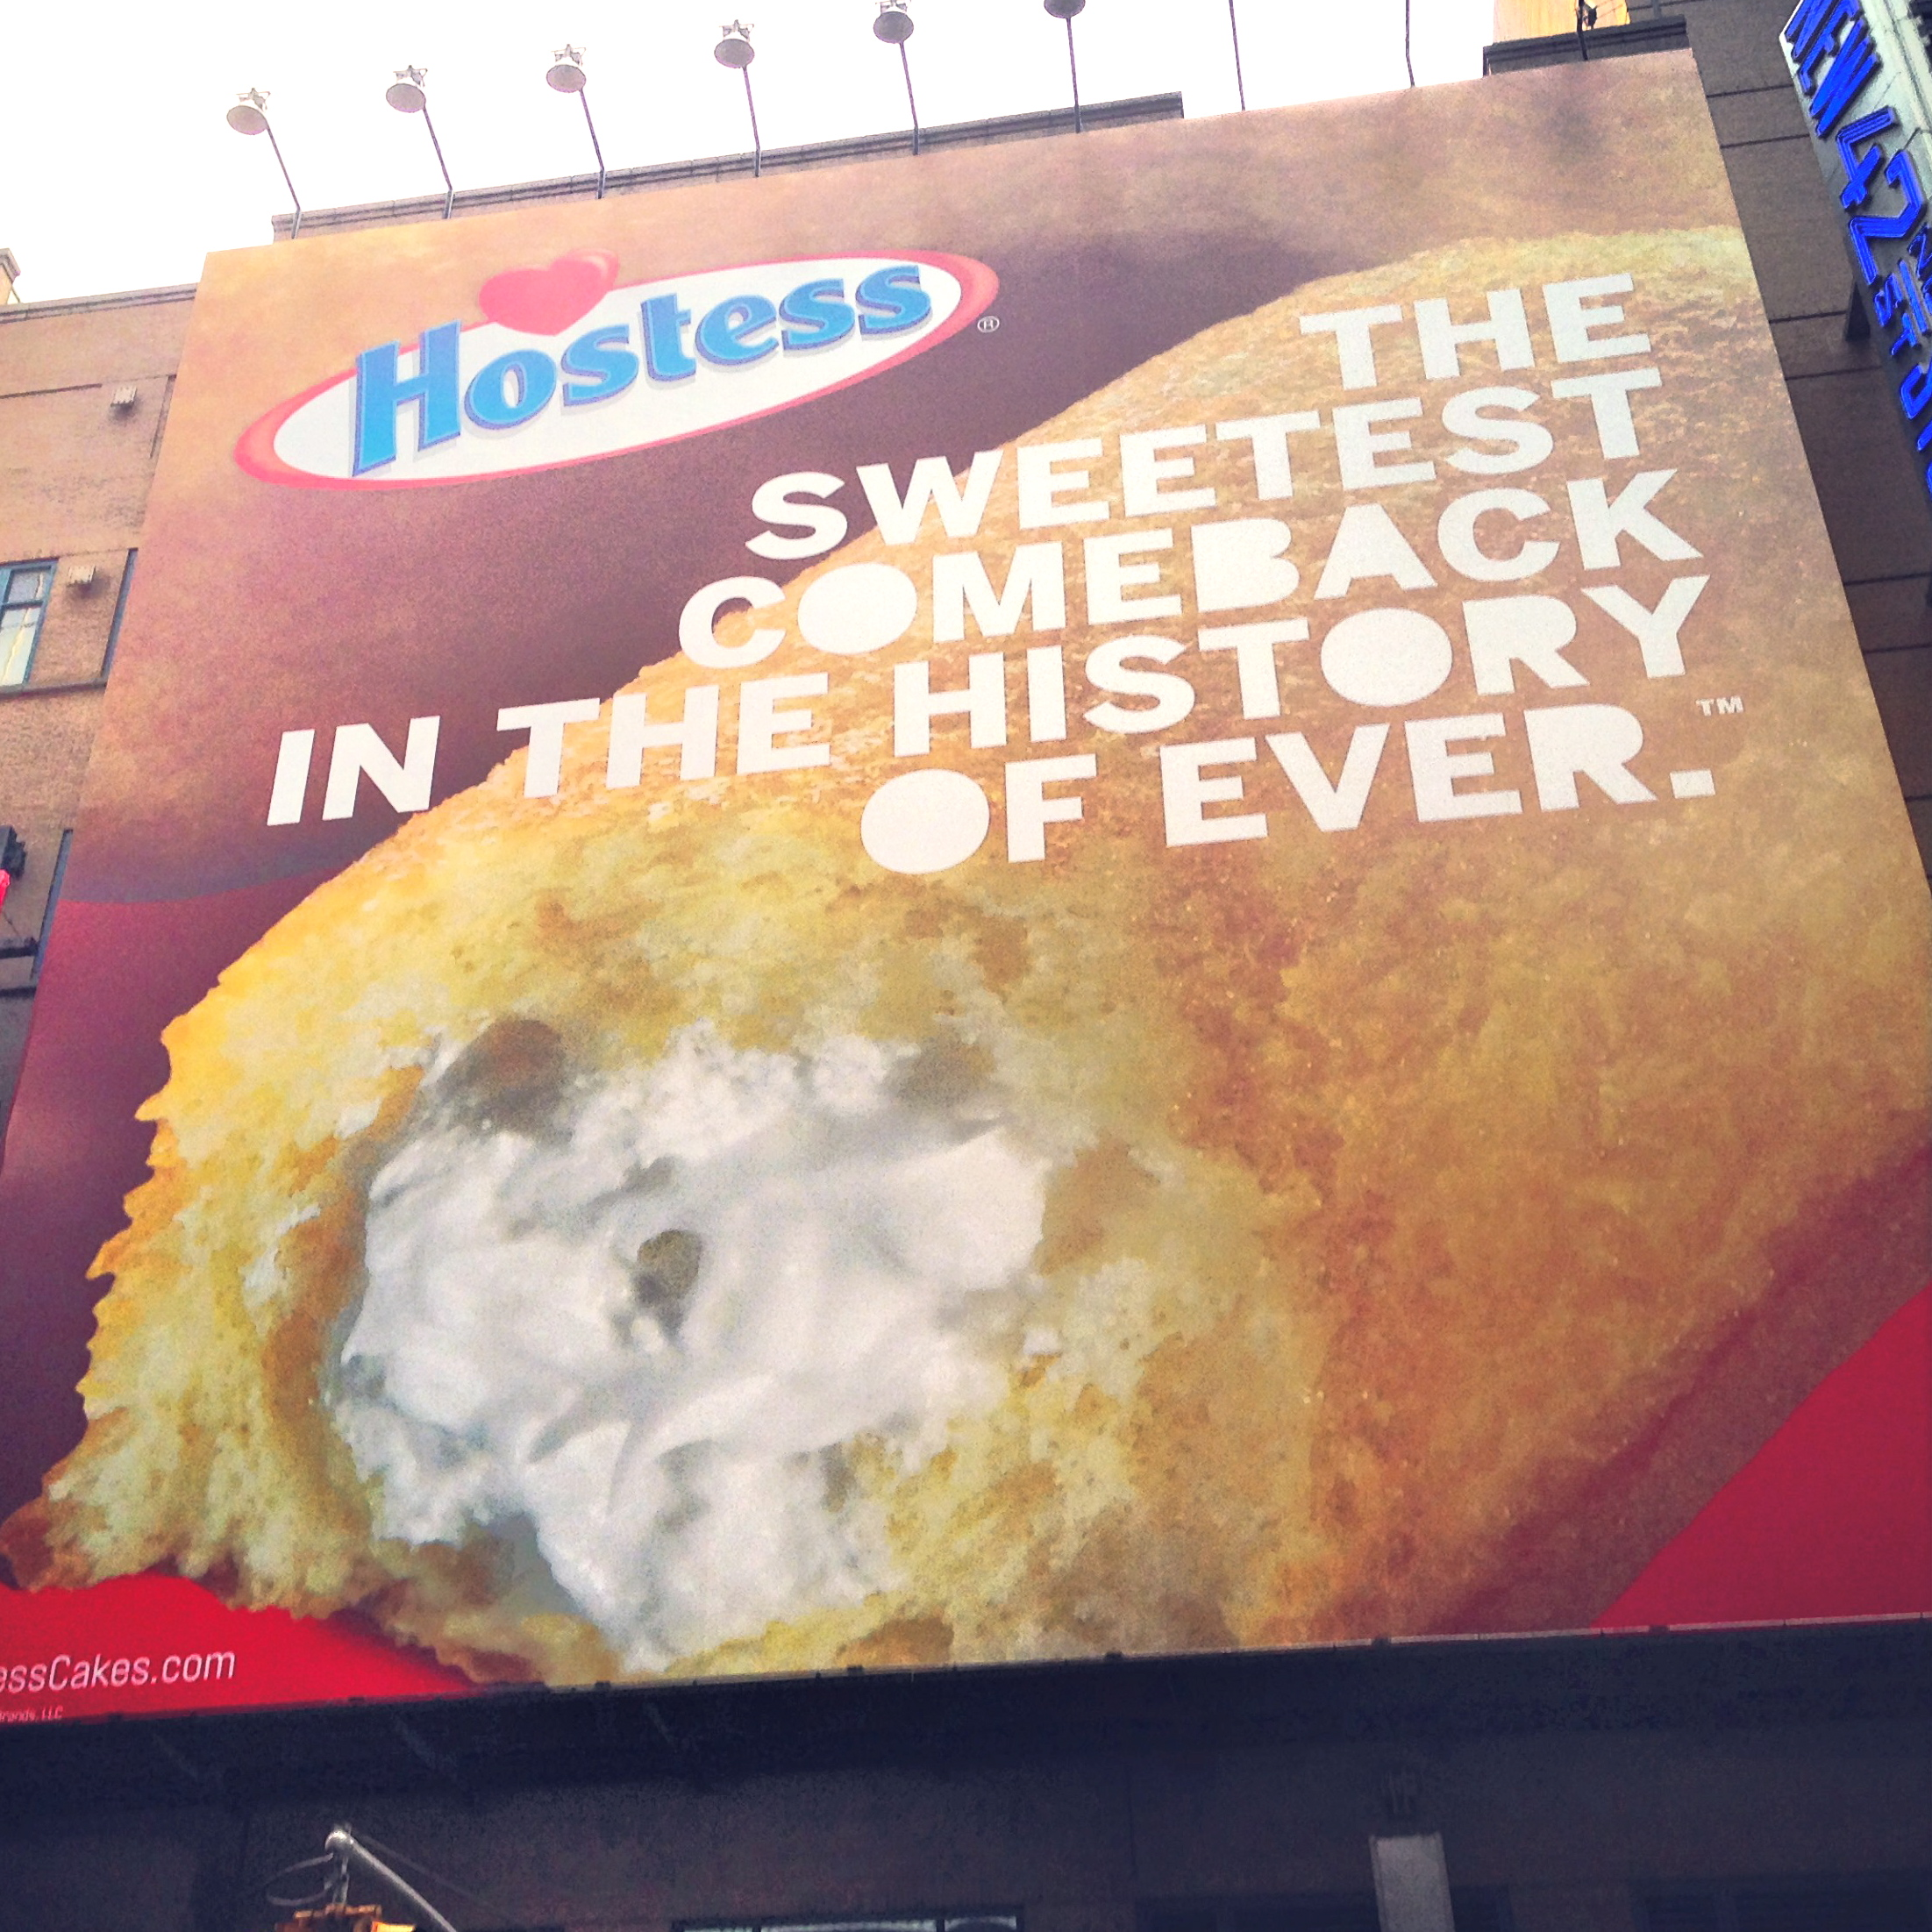 downfall of hostess